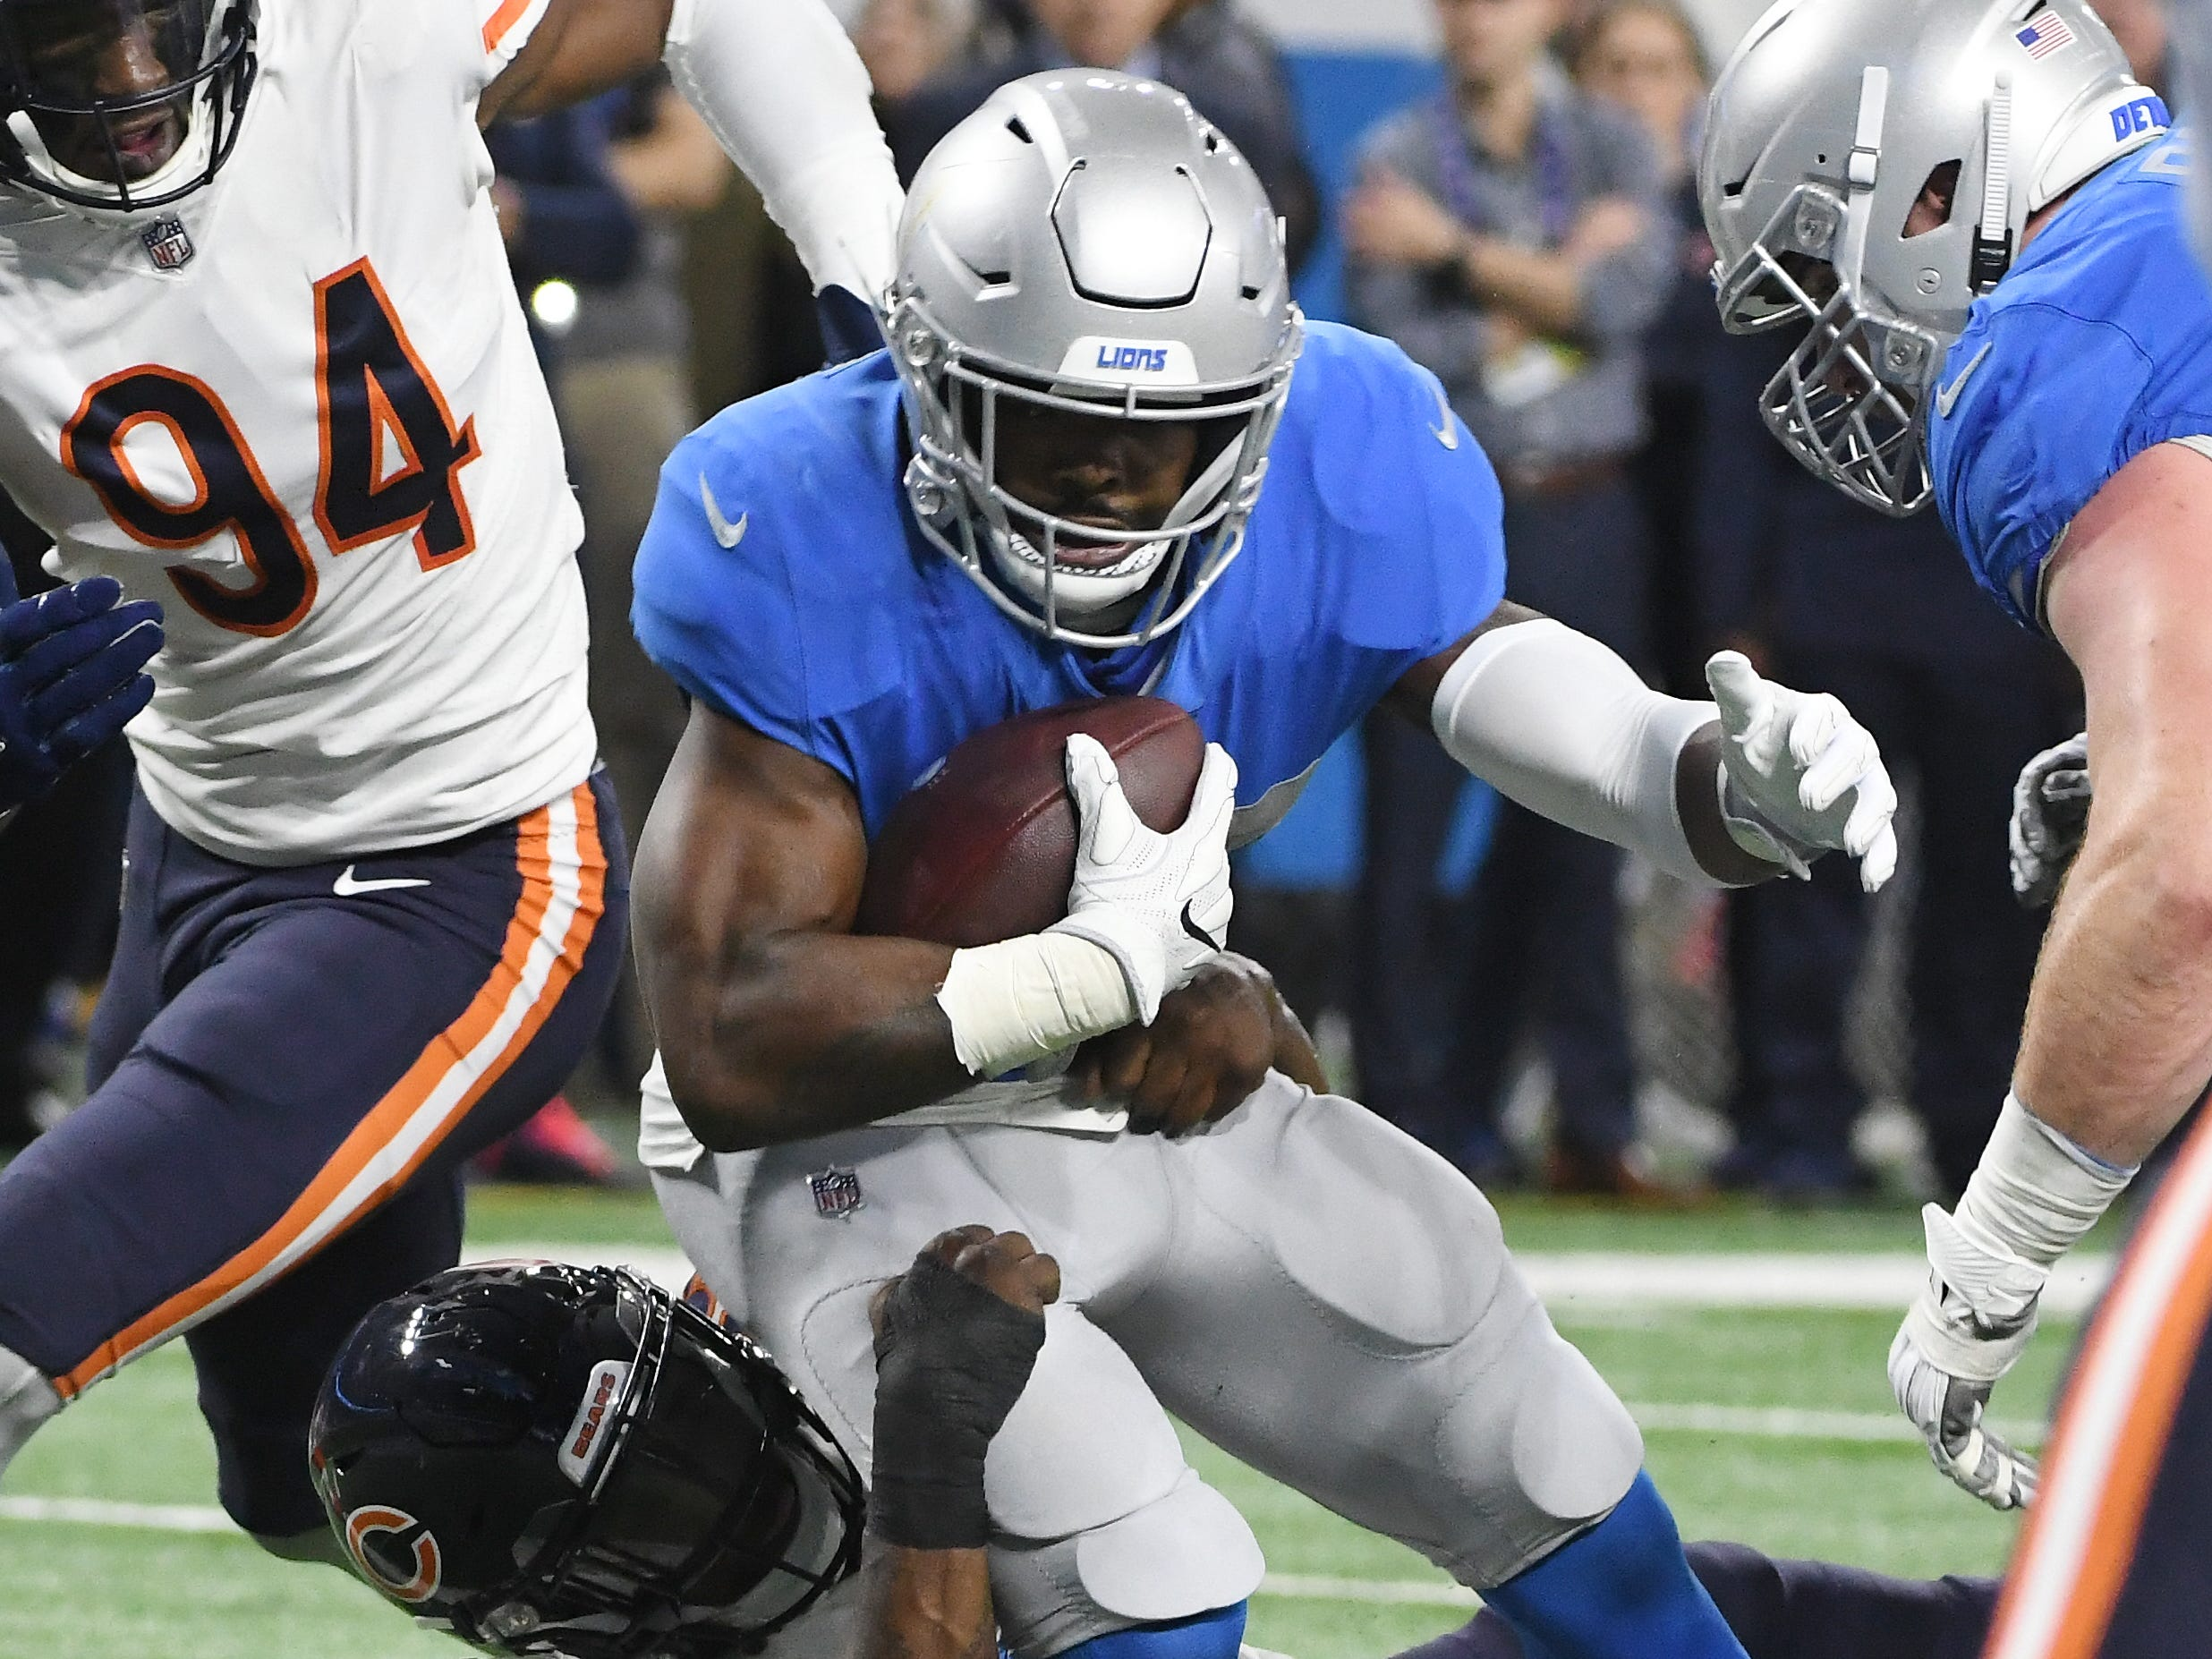 Lions' Theo Riddick continues to work up field on a run in the second quarter.